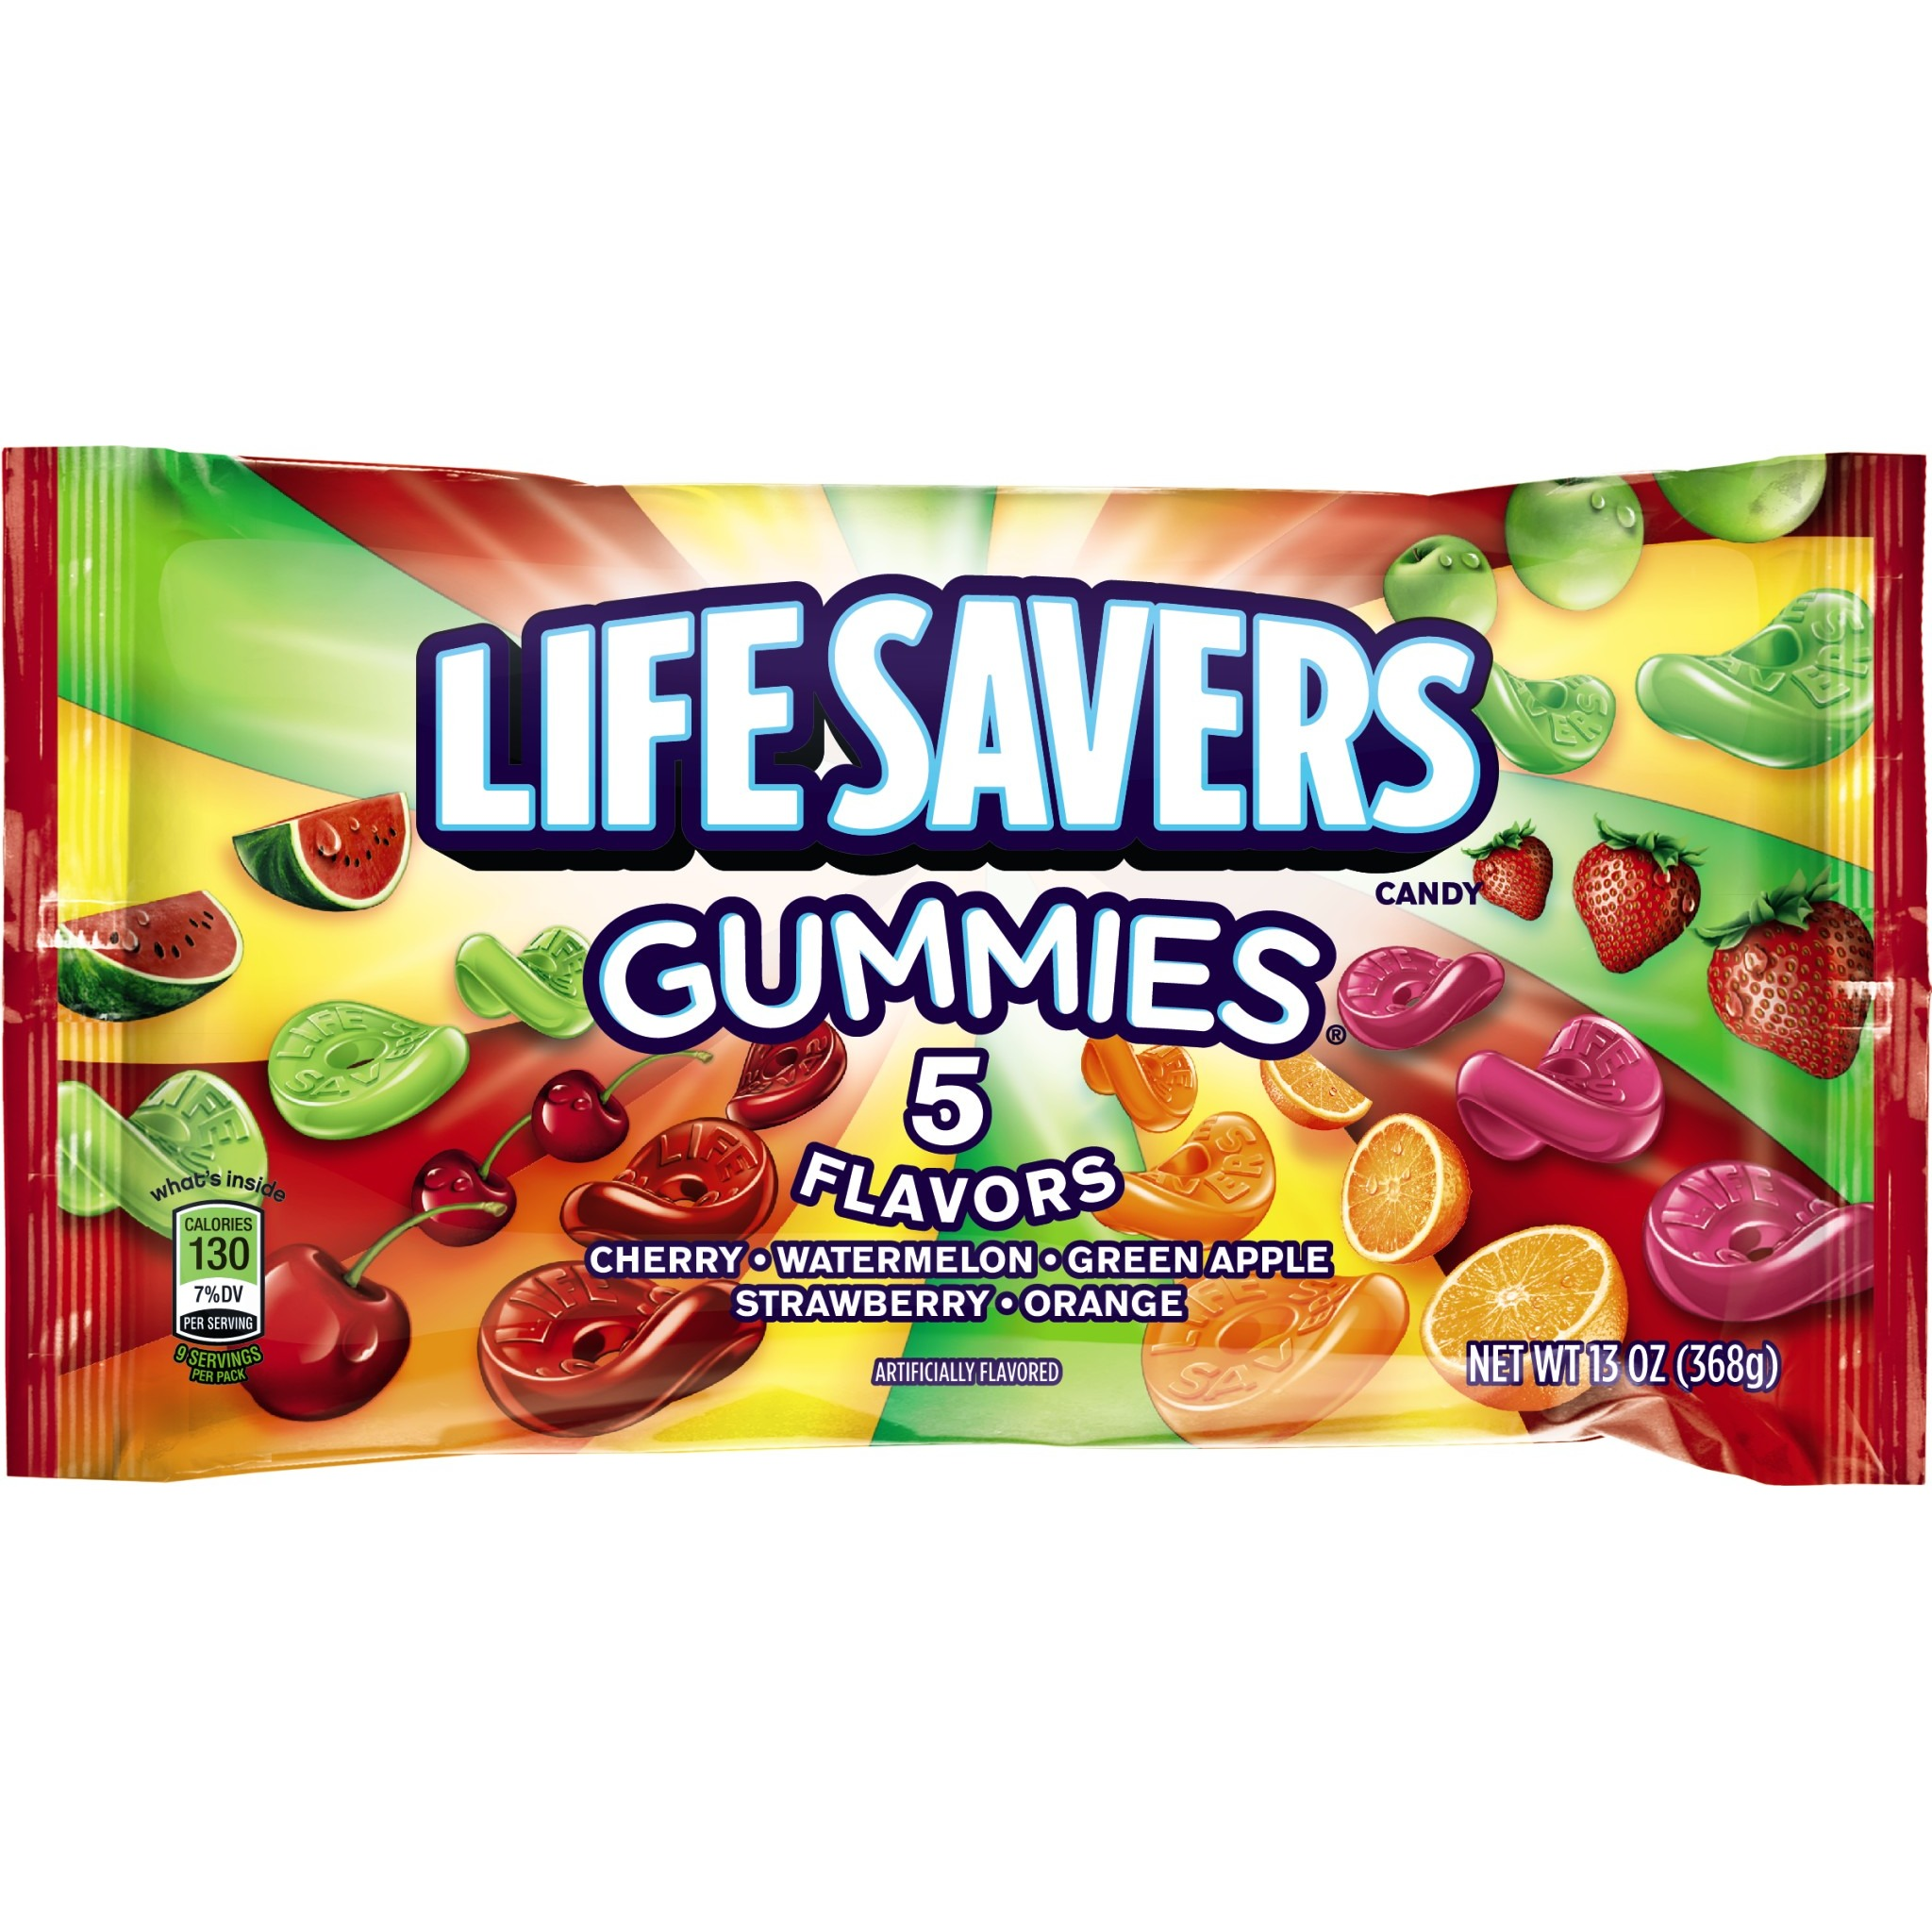 Life Savers 5 Flavors Gummies Candy Bag, 13 ounce by Generic